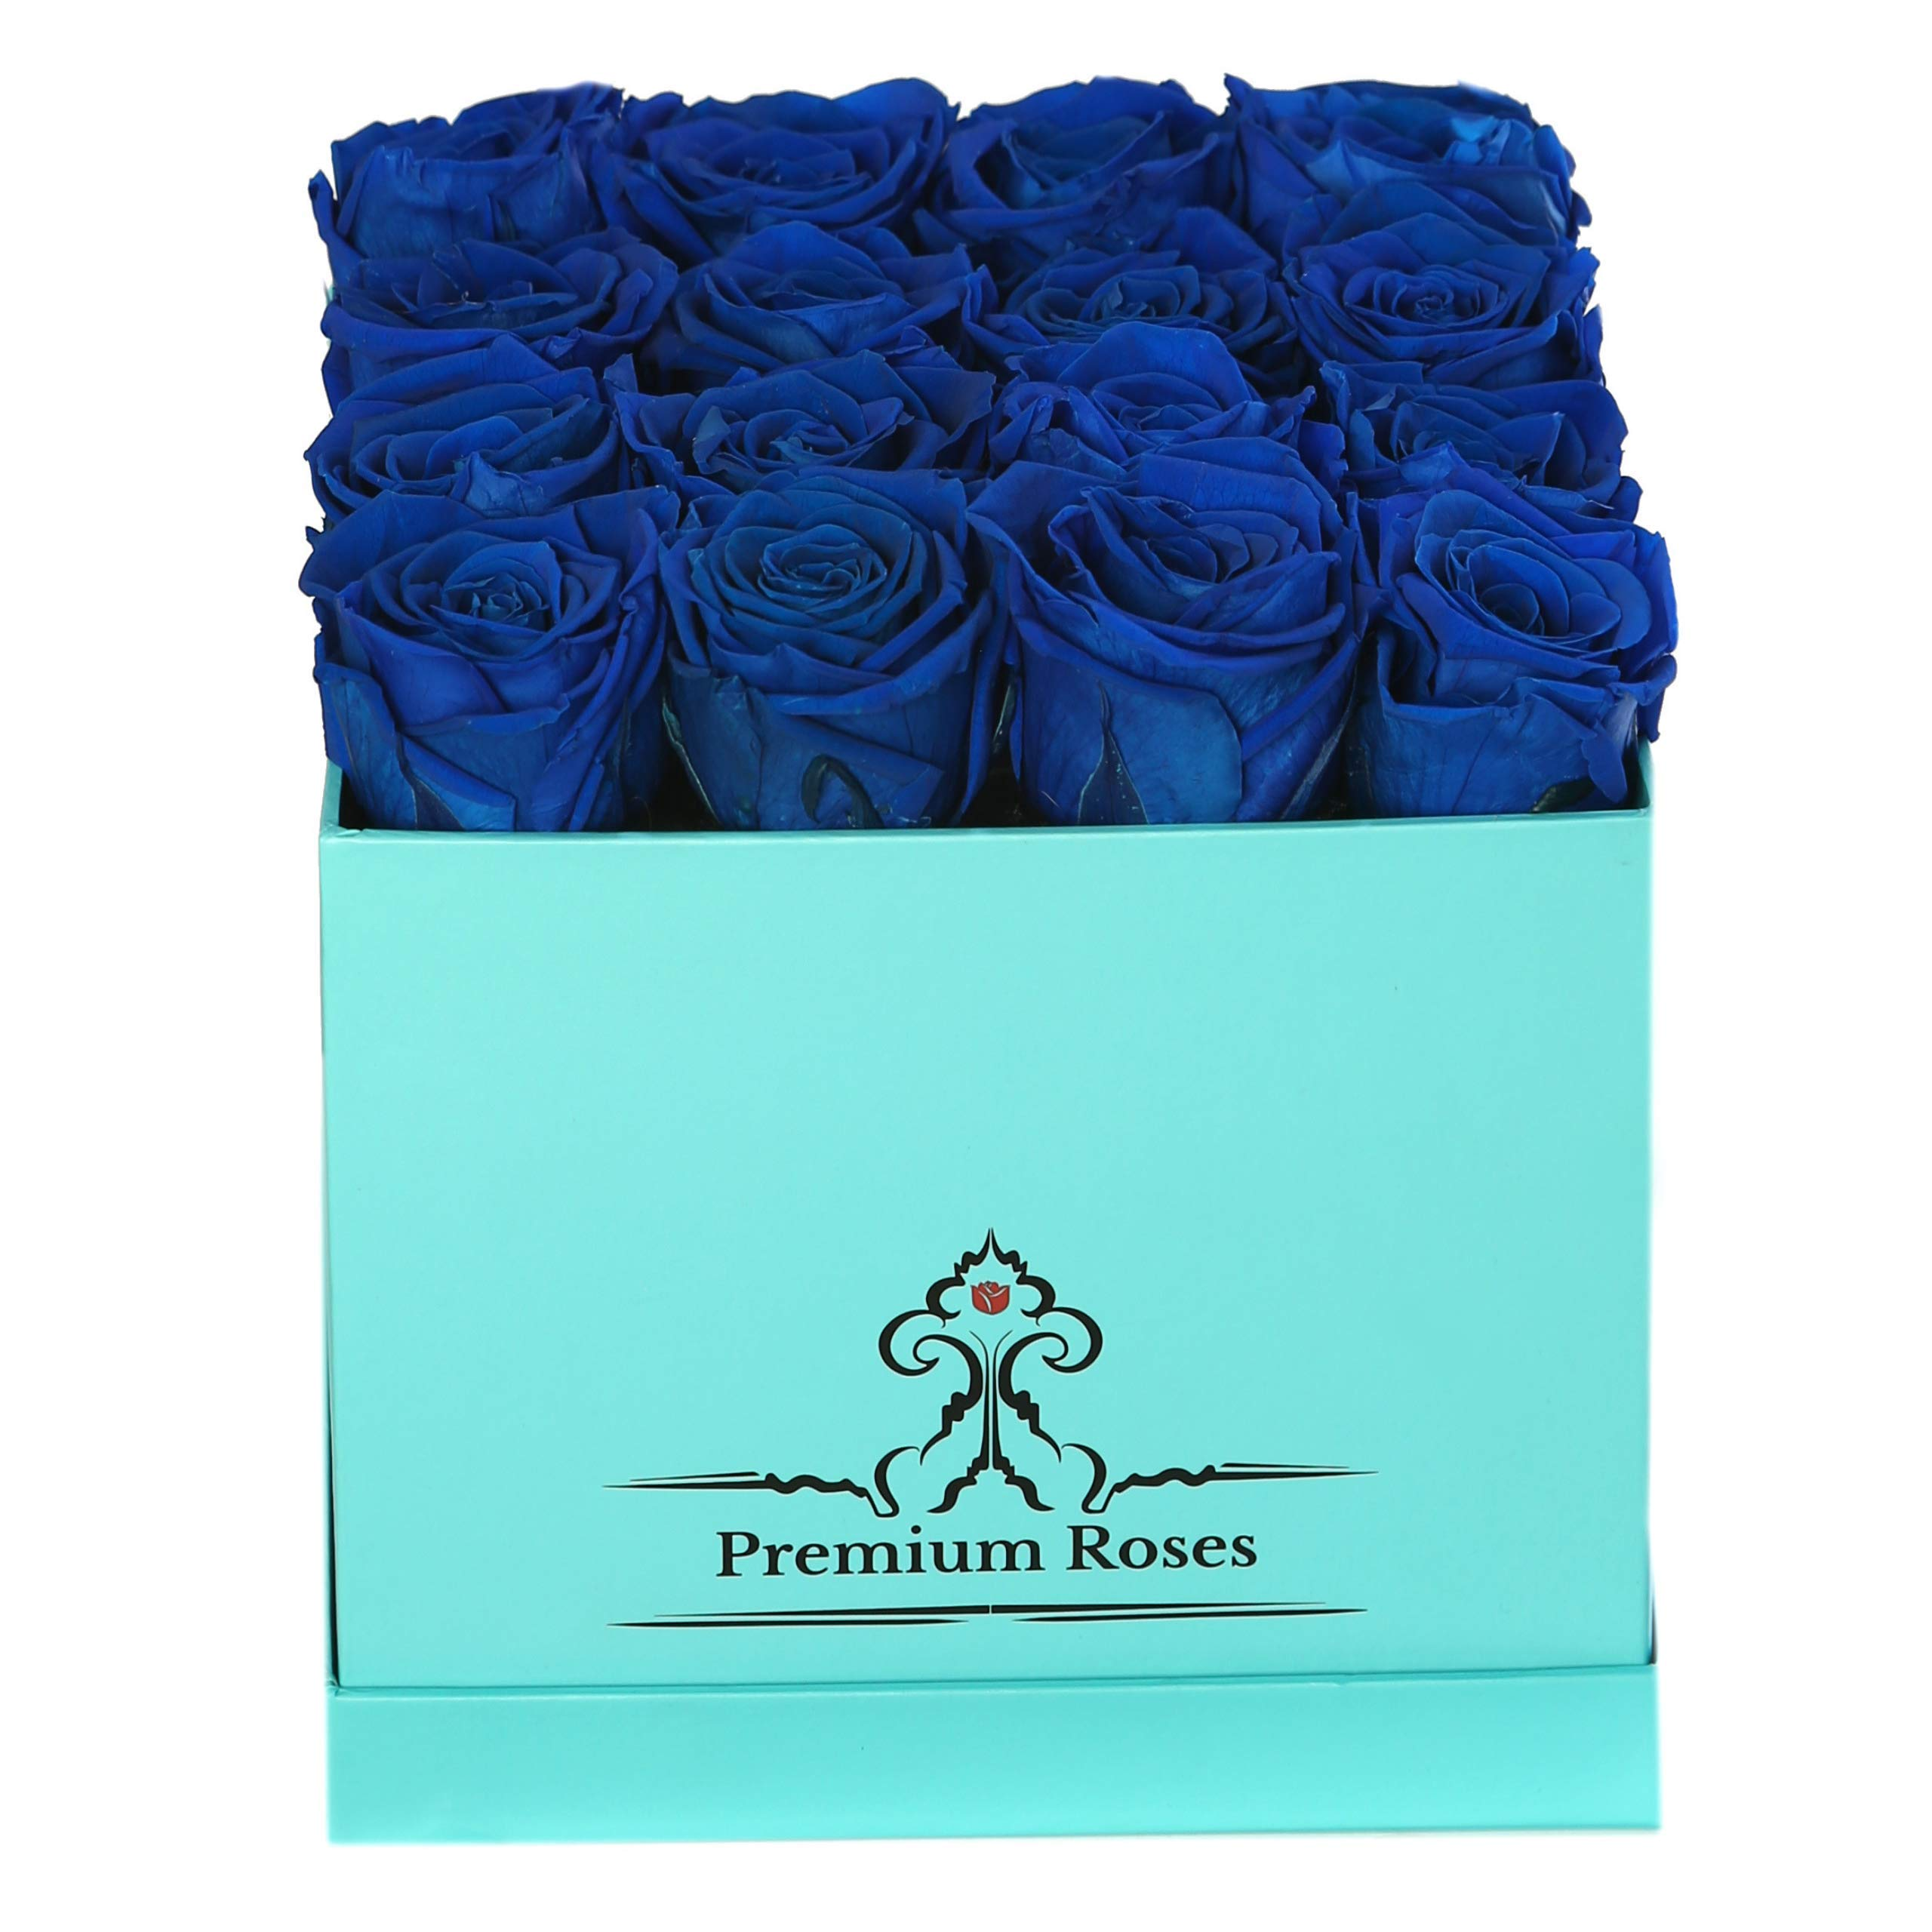 Premium Roses | Model Turquoise| Real Roses That Last 365 Days | Roses in a Box| Fresh Flowers (Blue Box, Medium)